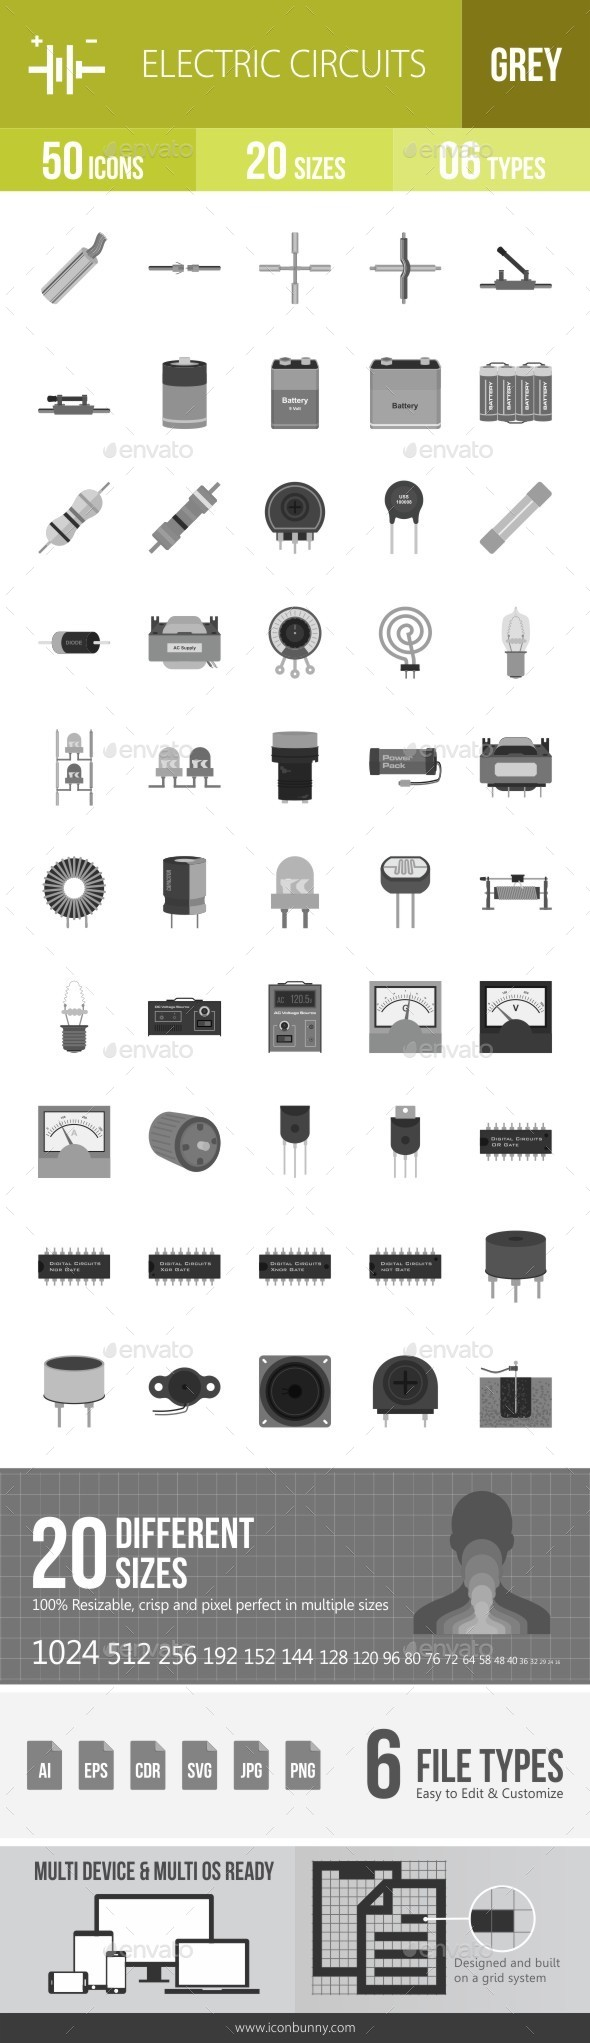 Electric Circuits Greyscale Icons - Icons